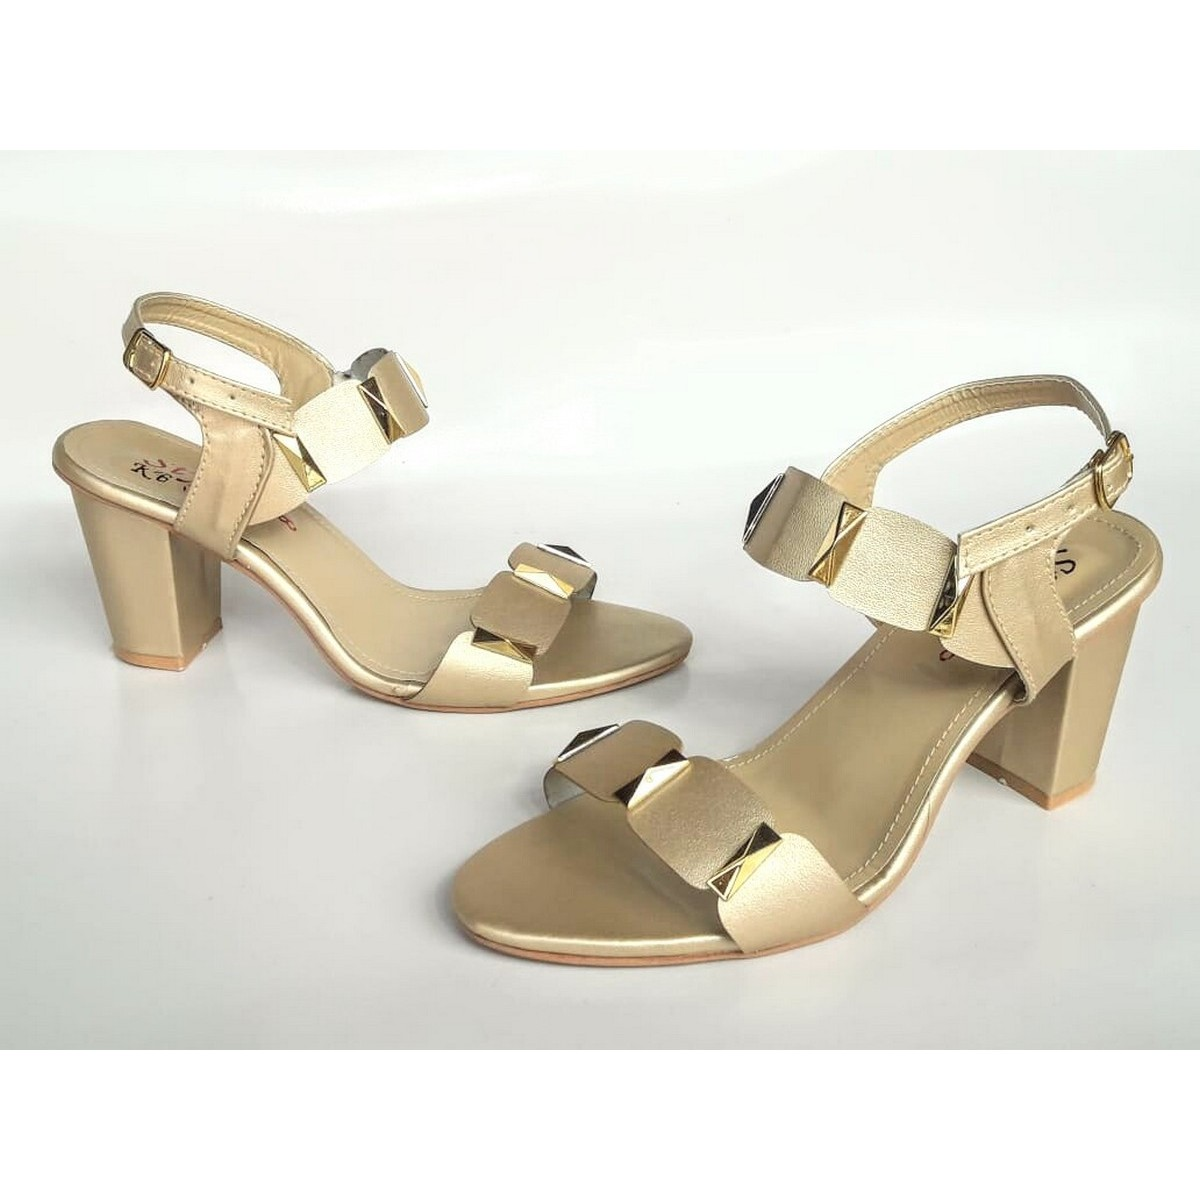 Stylish Pazaib Shoes High Block Heel Double Banded Sandal For Women